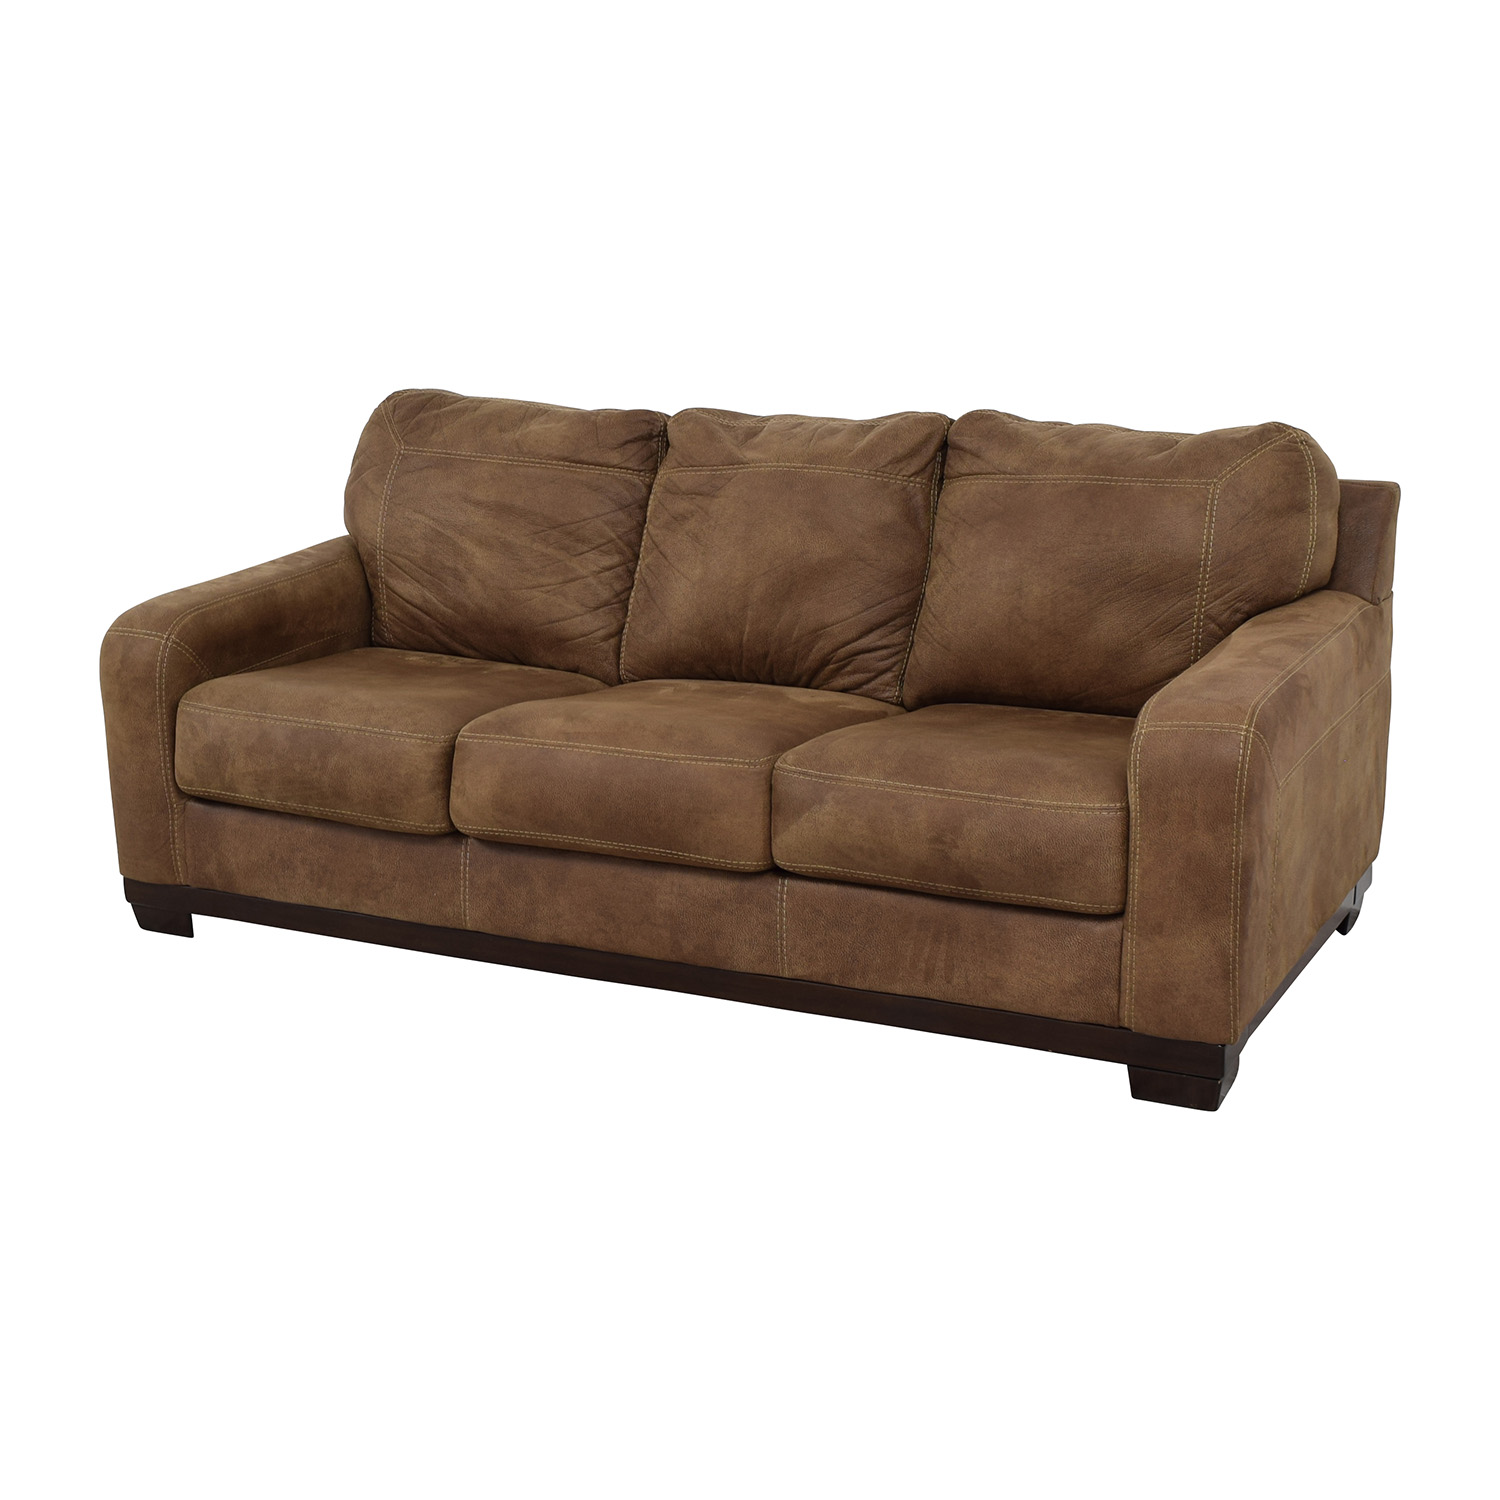 75% OFF Ashley Furniture Ashley Furniture Kylun Brown Three